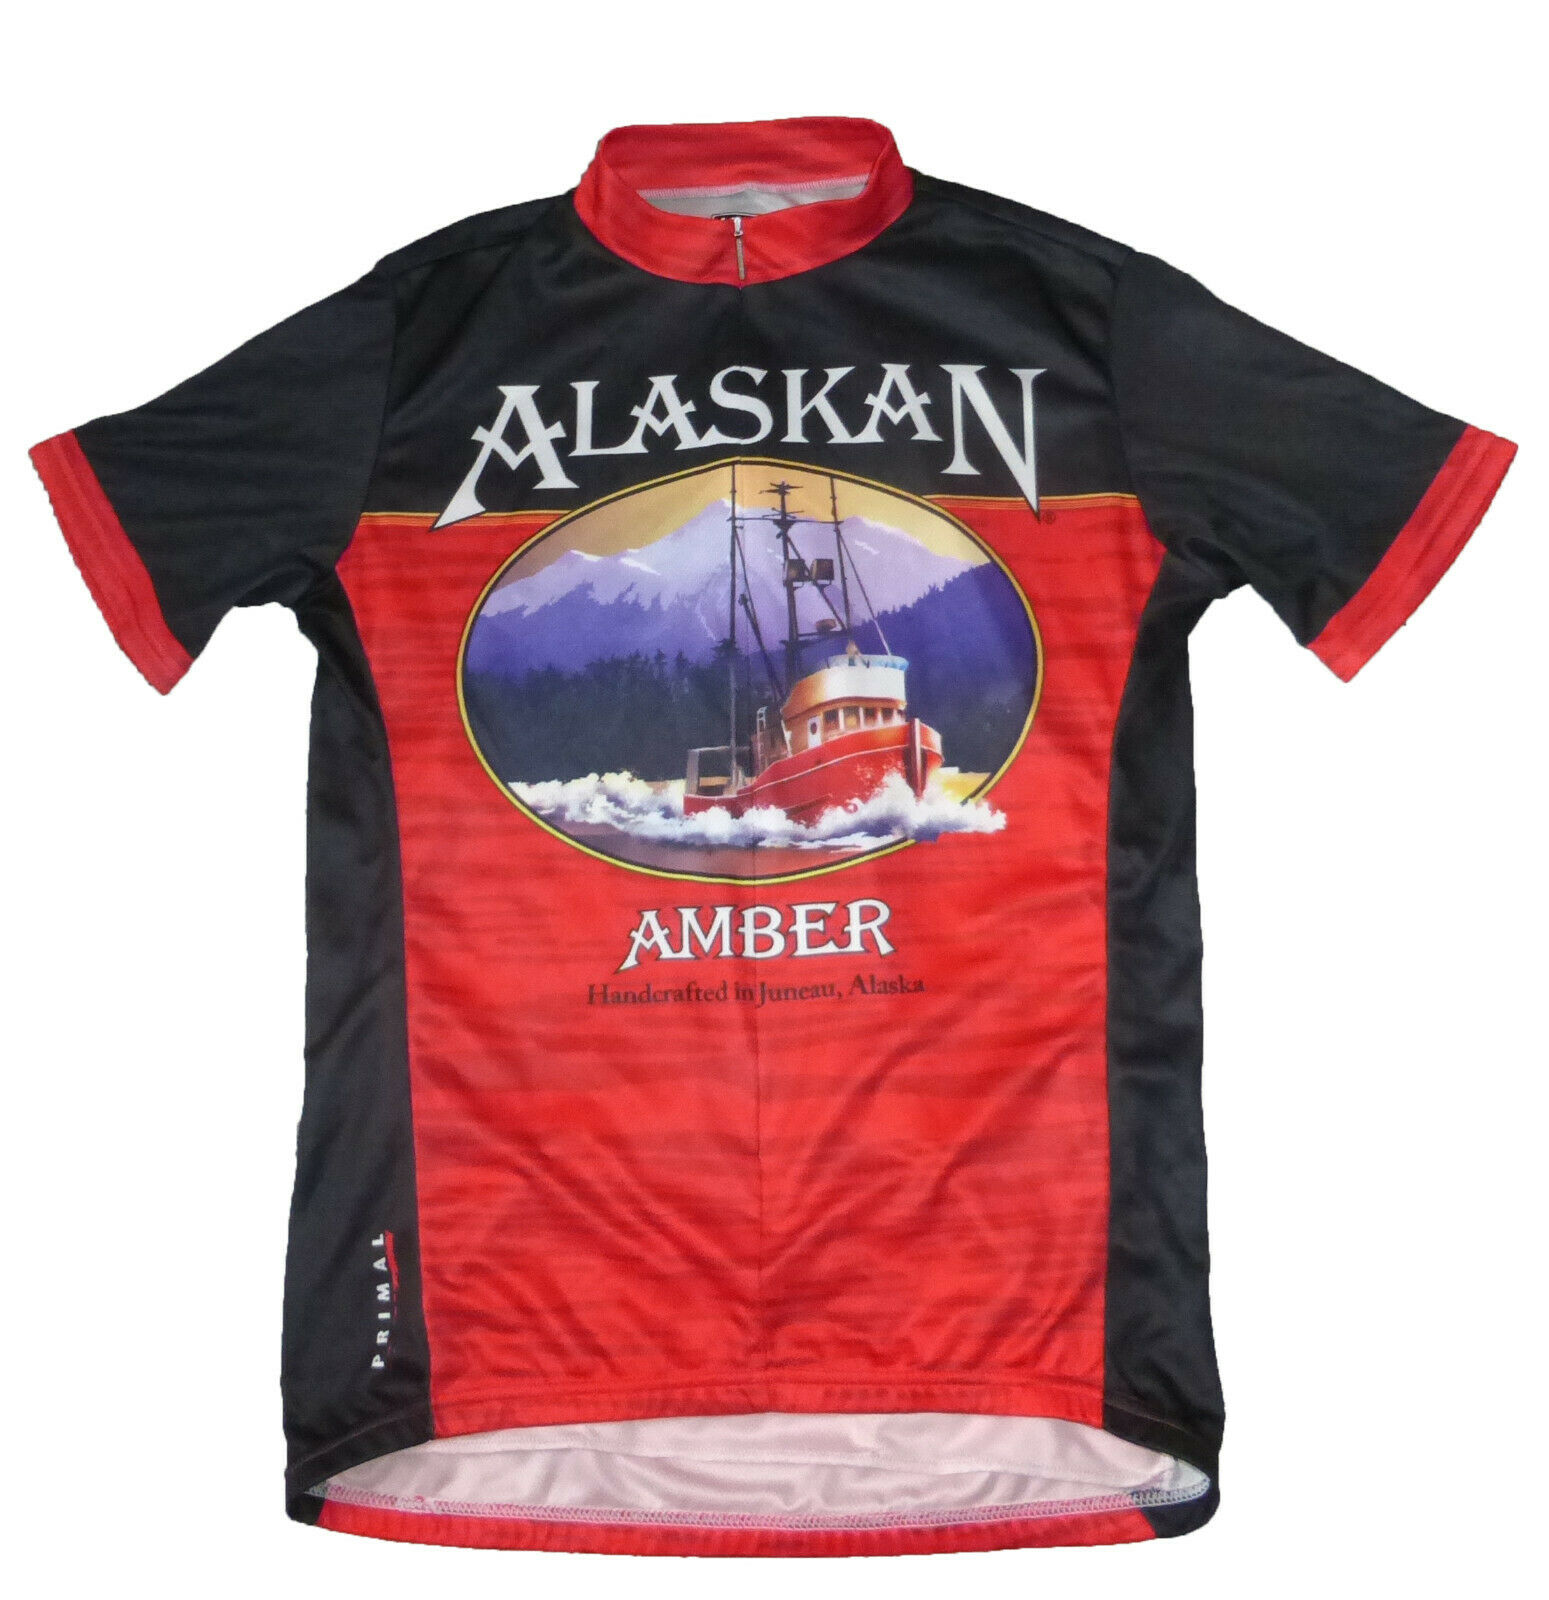 Primal ALASKAN AMBER Short-Sleeved Bike Jersey, Men's M